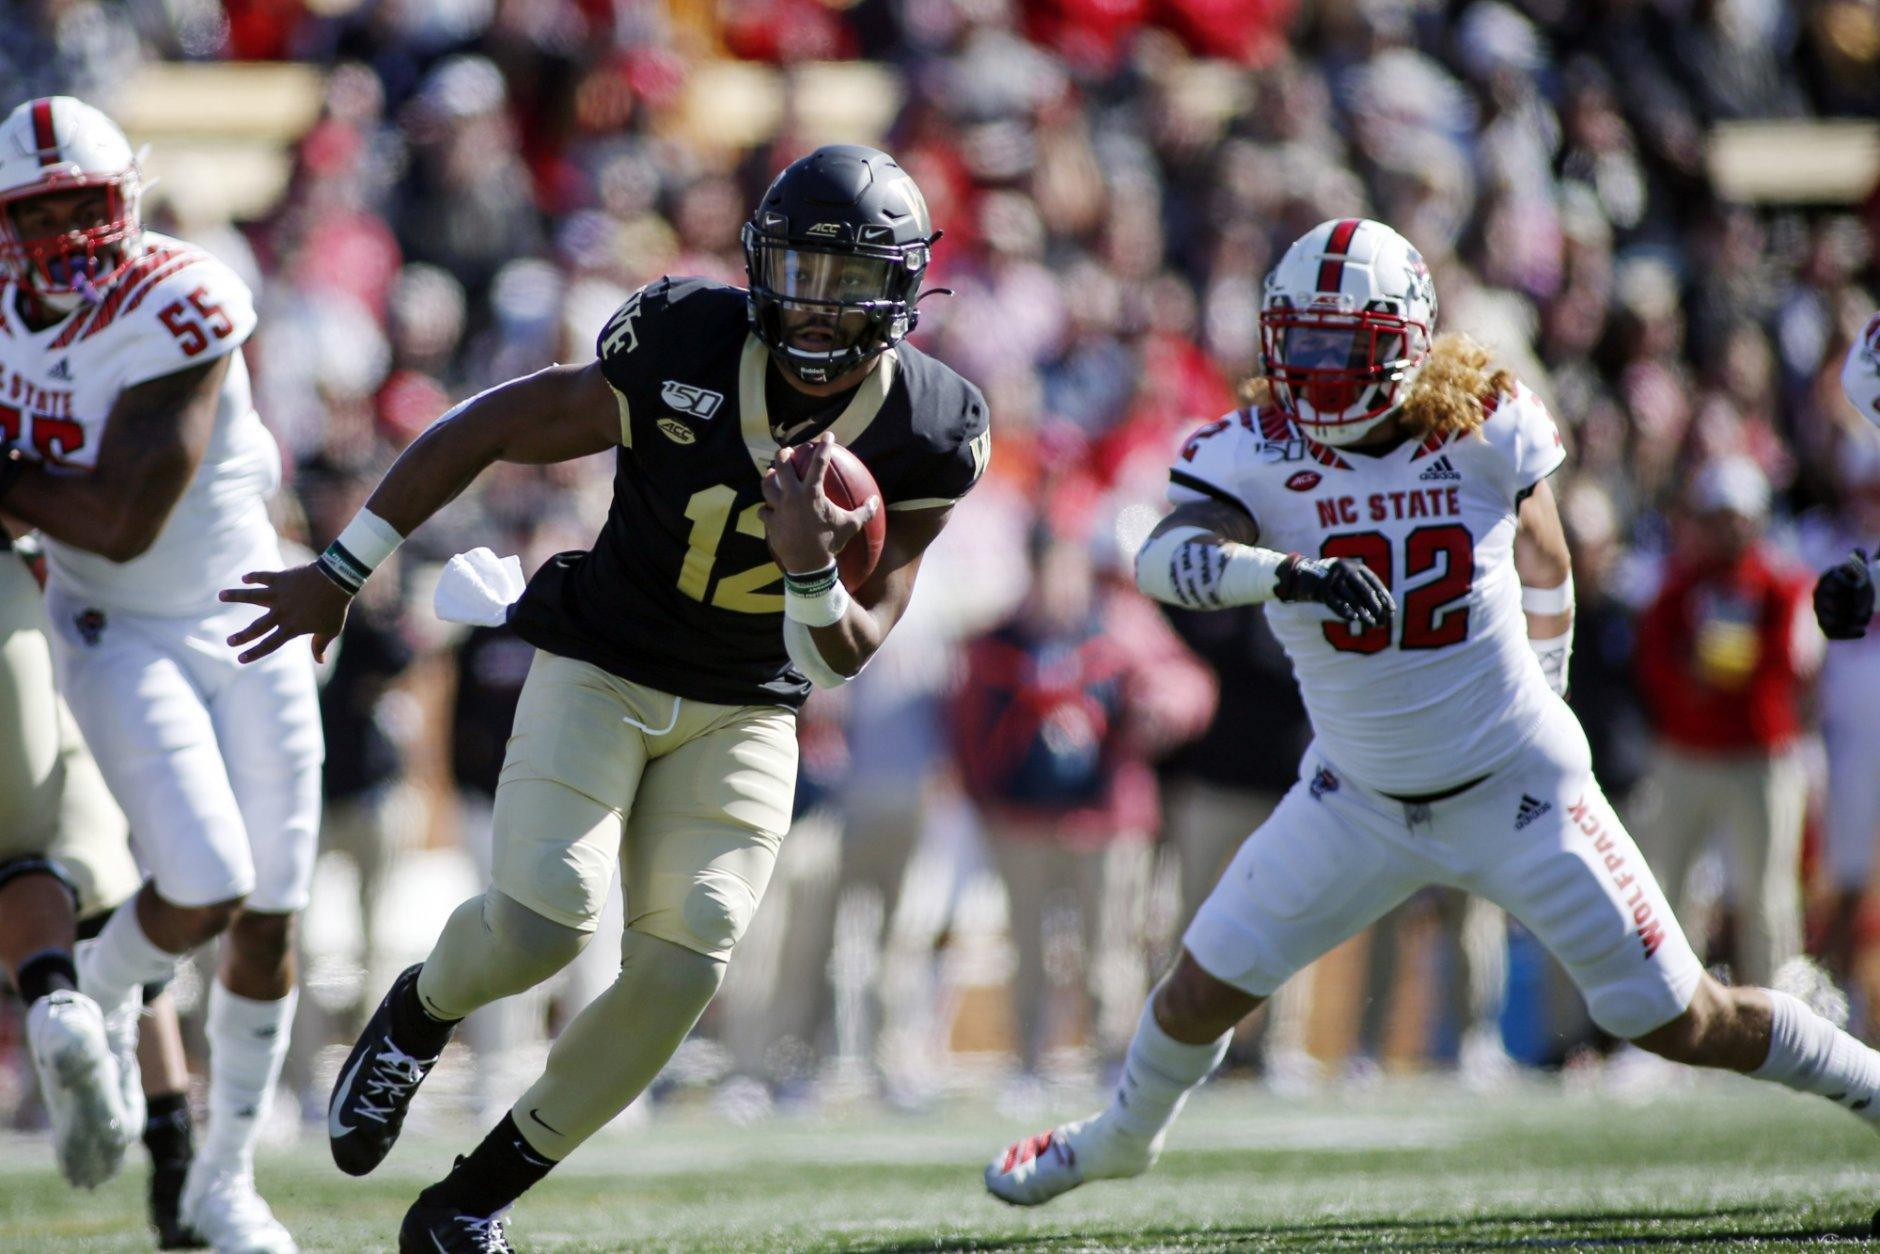 <p><strong>No. 19 Wake Forest (7-1):</strong> Beat Clemson, win out, win ACC title, get a two-loss conference champion elsewhere</p> <p>The ultimate outsider, Wake's been hurt by a bad ACC that hasn't afforded them many quality wins. Had Virginia Tech beaten Notre Dame last week, it would have lent a bit more juice to this weekend's matchup. But it all comes down to a date at Clemson next week. Wake needs to win every game from here on out, and probably get an upset from one of the higher-rated conferences. But there's still a path there.</p>